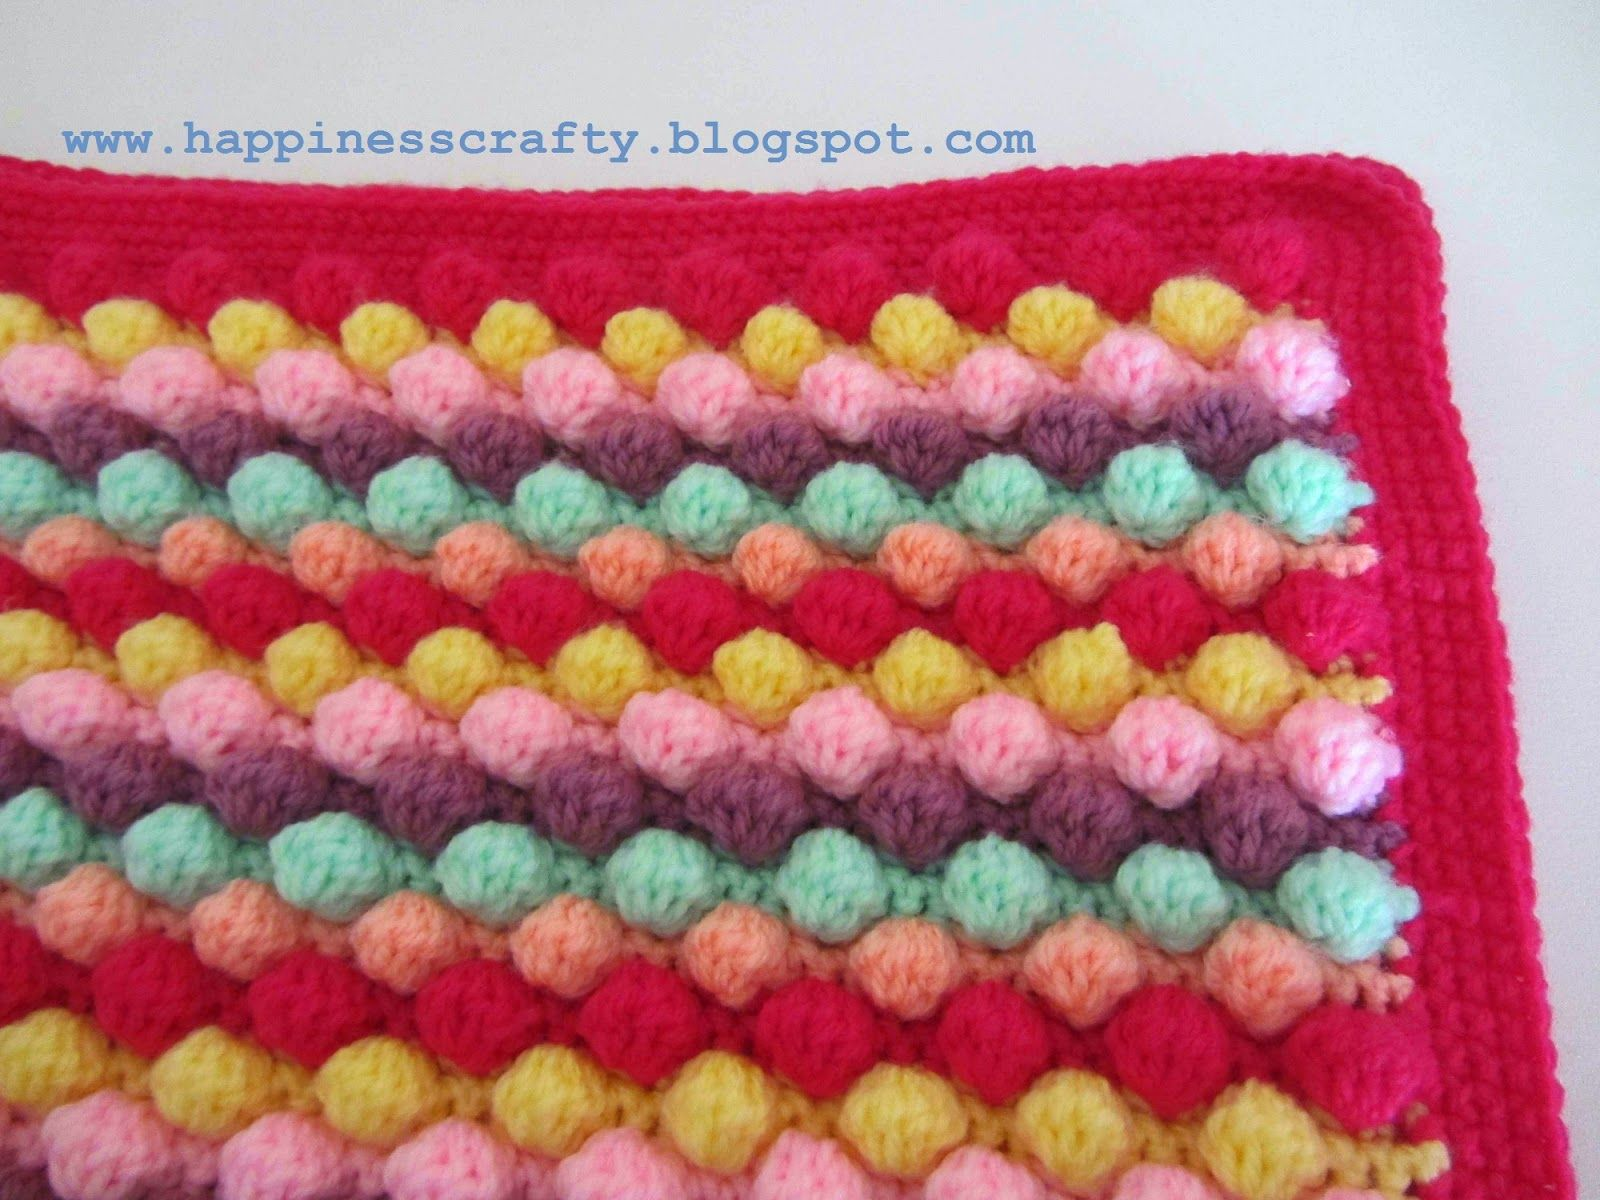 Knitting Pattern For Bobble Blanket : Happiness Crafty: Crochet Baby Girl Bobble Blanket ~ Free Pattern crochetin...